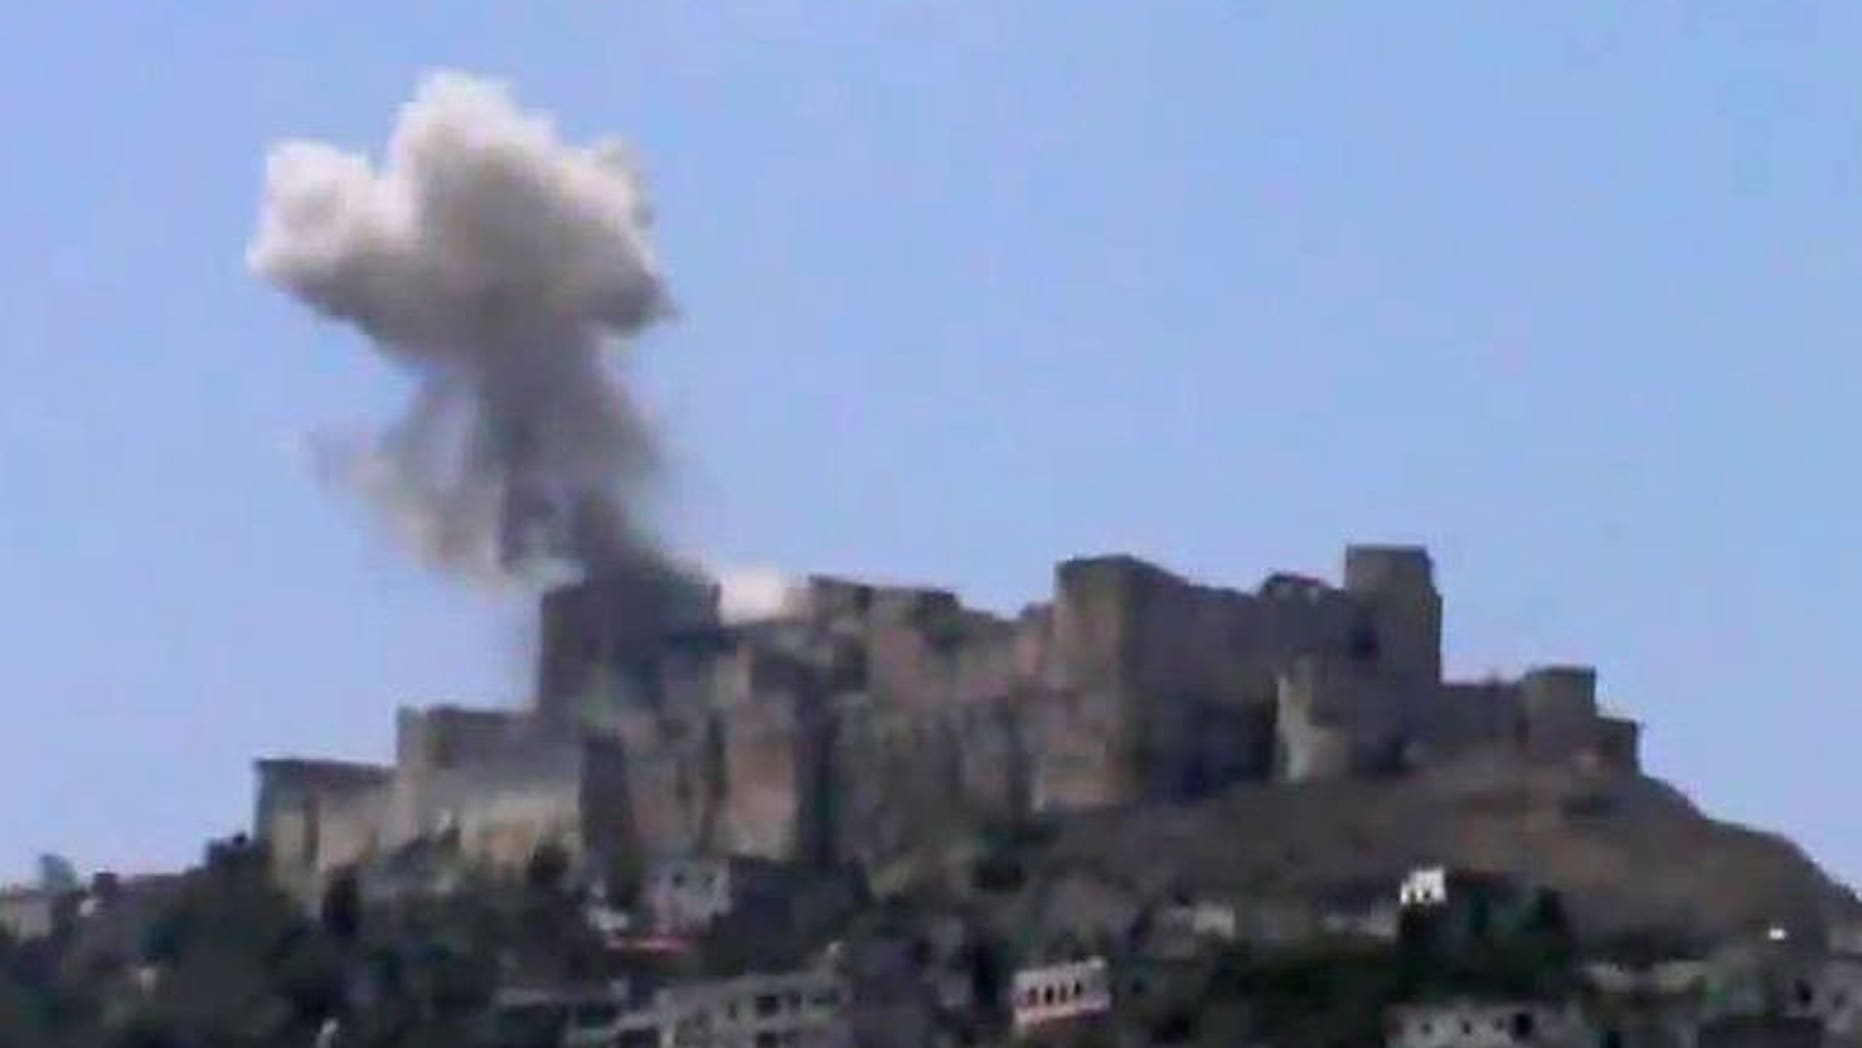 An image grab taken from a video uploaded on YouTube on July 12, 2013 shows smoke billowing from Syria's famed Krak des Chevaliers castle in central Homs province. AFP is using pictures from alternative sources. An air raid has damaged one of the fortress's towers, according to footage shot by activists.